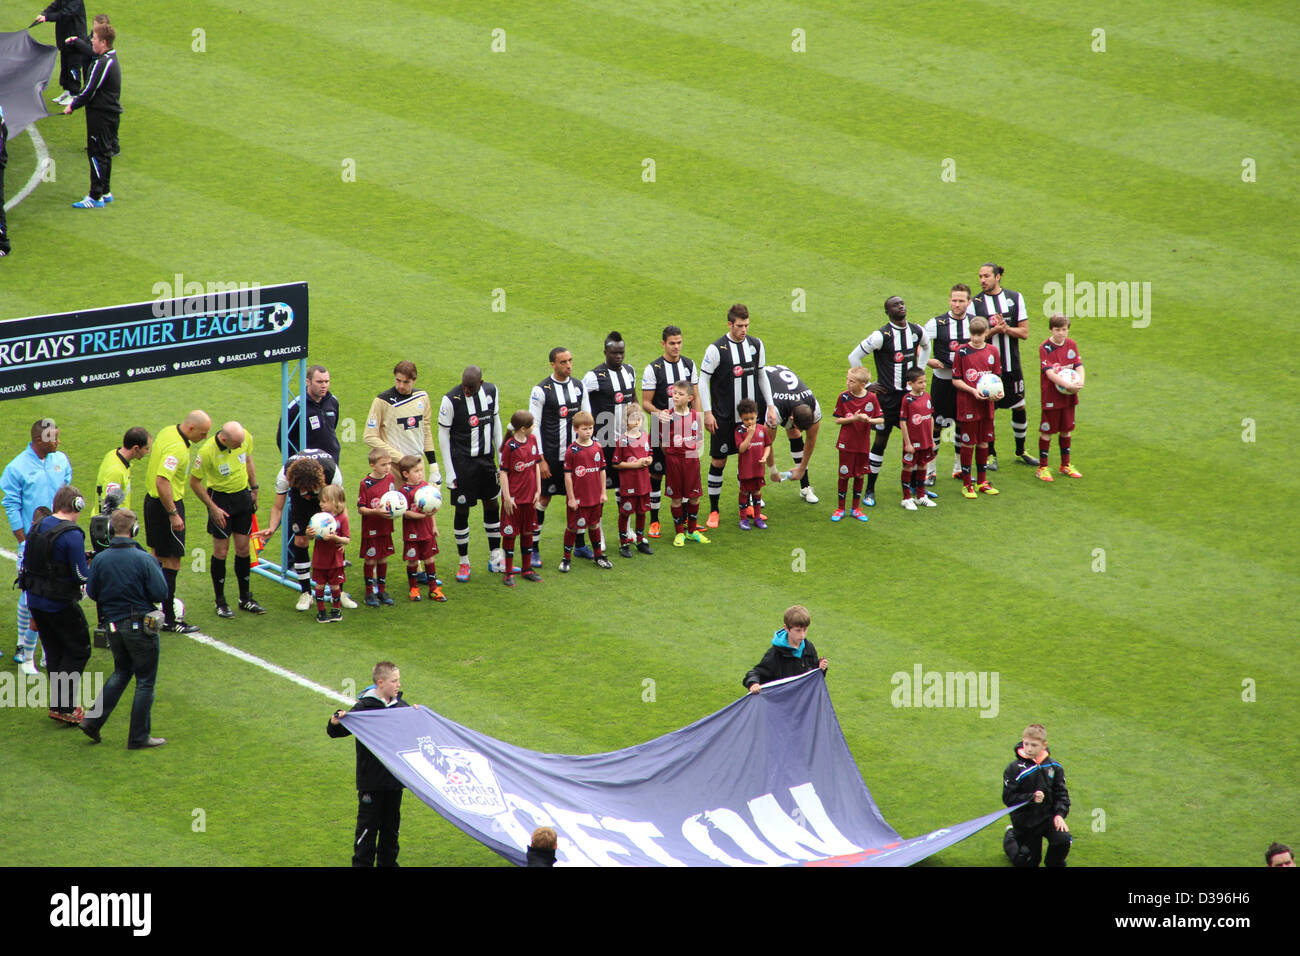 Newcastle United v Manchester City at St James's Park, Newcastle, 06/05/12 - Stock Image